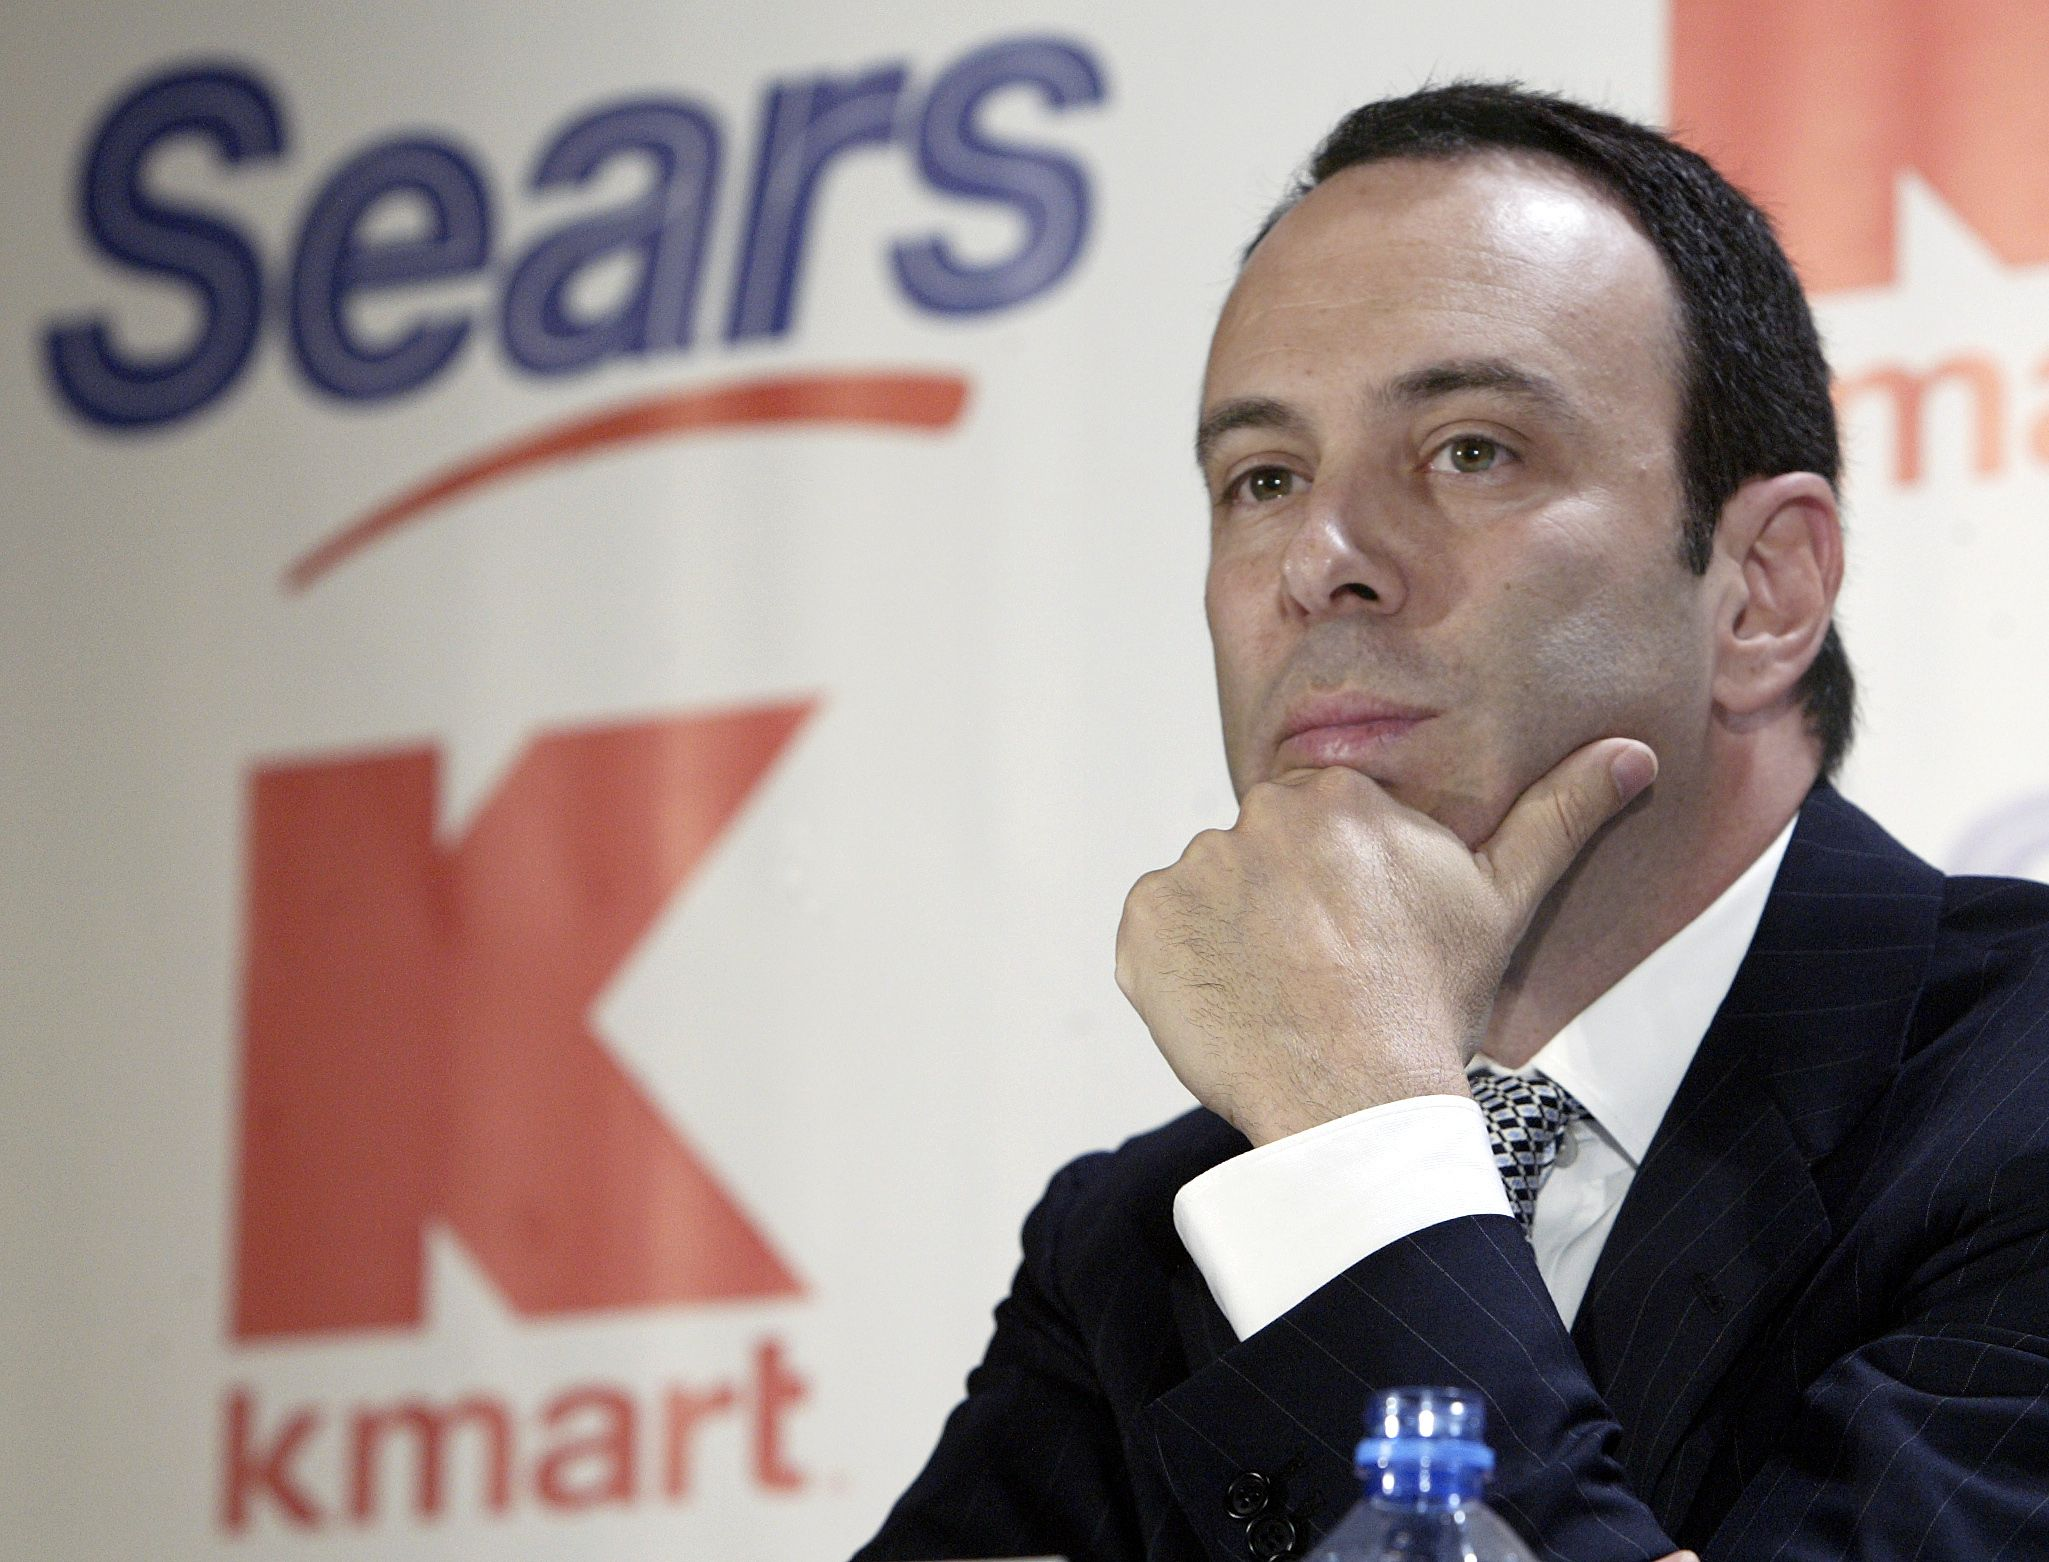 Kmart chairman Edward Lampert listens during a news conference to announce the merger of Kmart and Sears in New York , 2004.